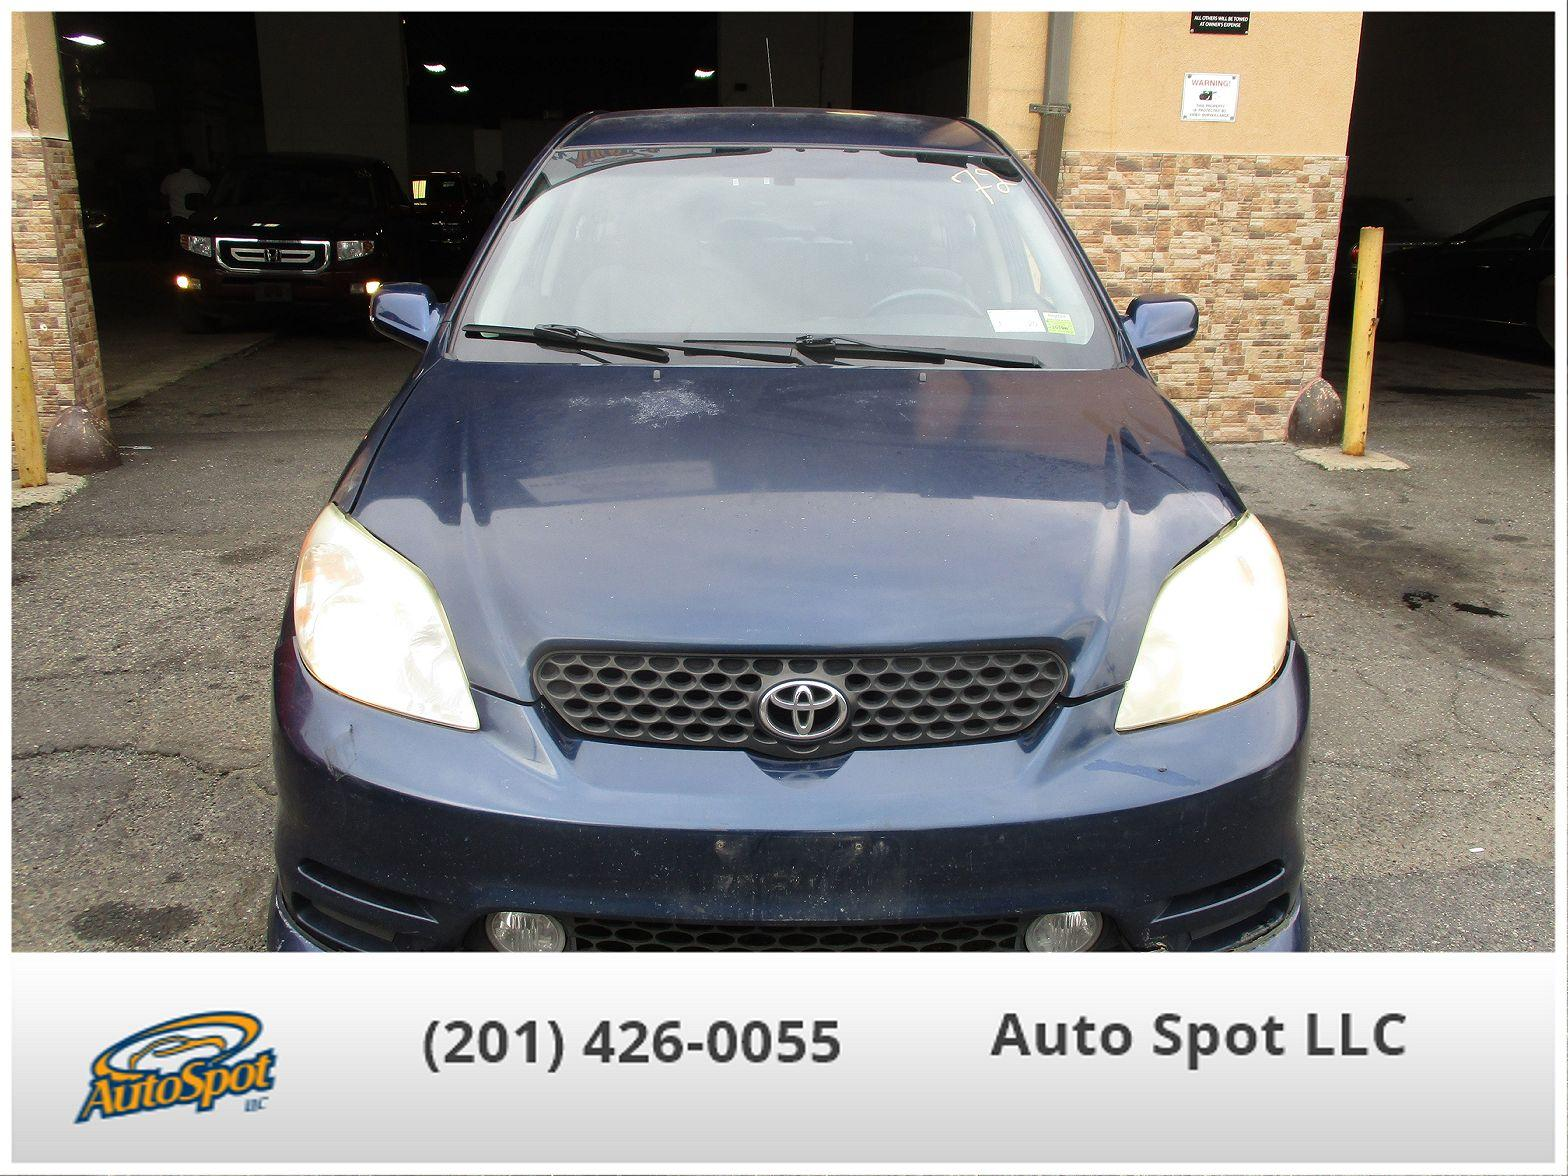 2003 Toyota Matrix $499